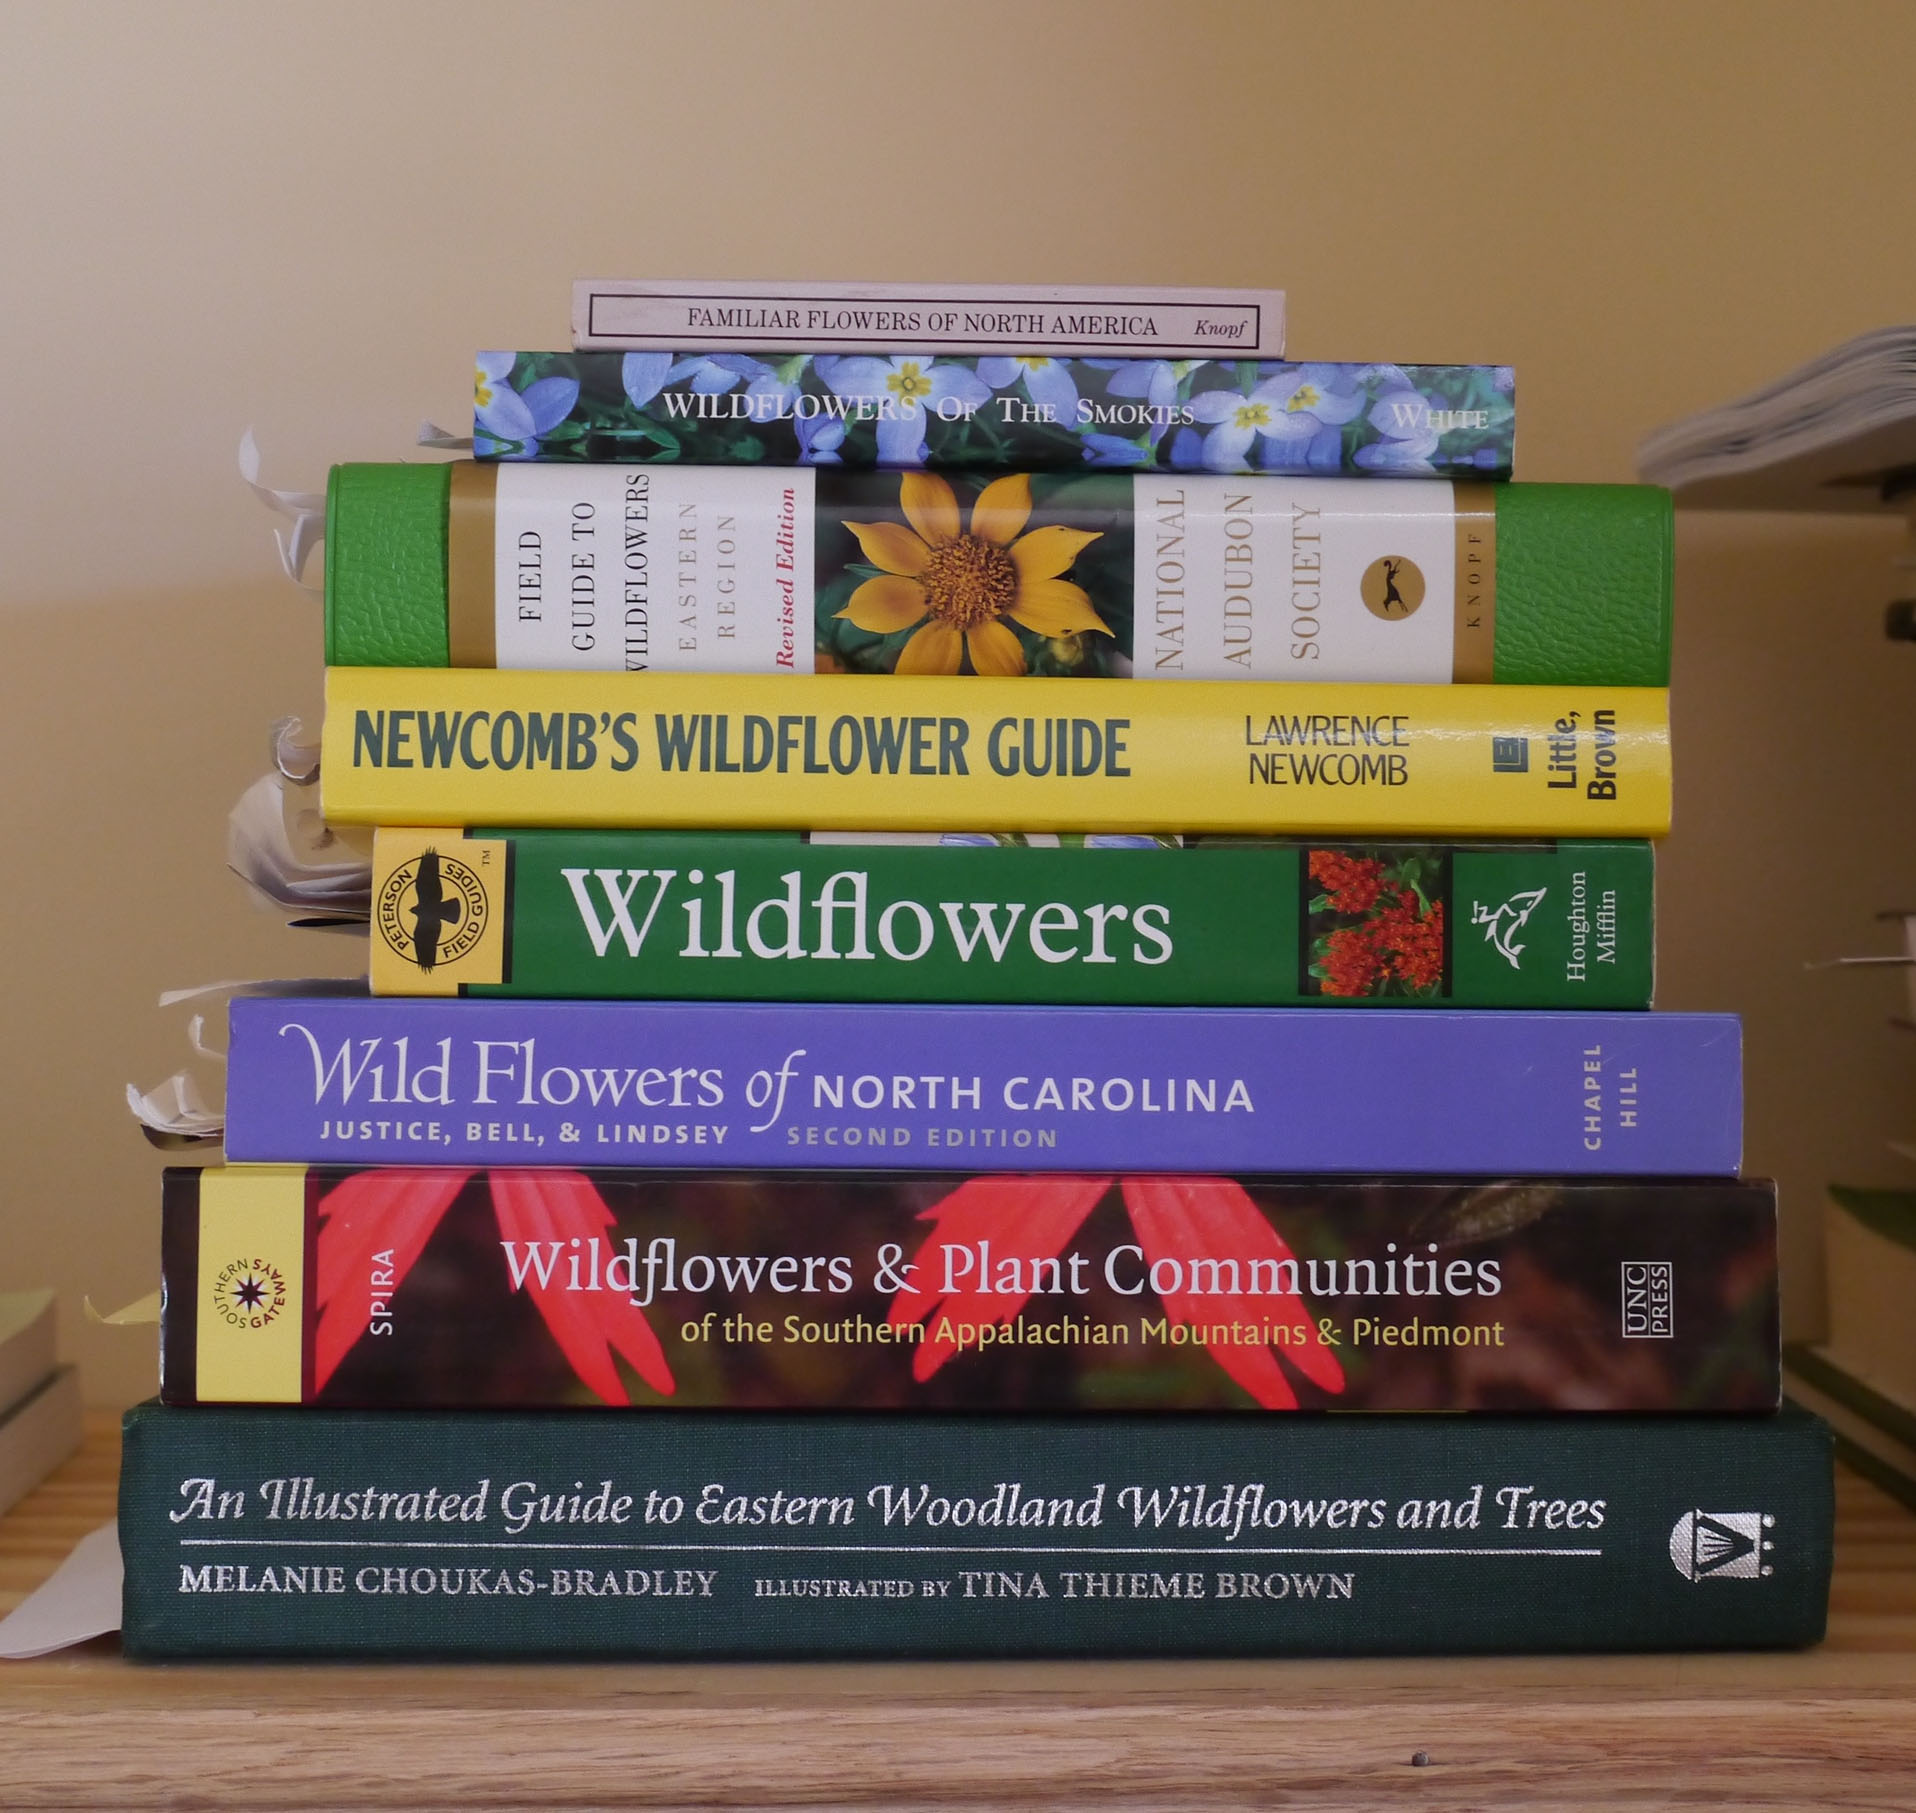 Wildflower field guides